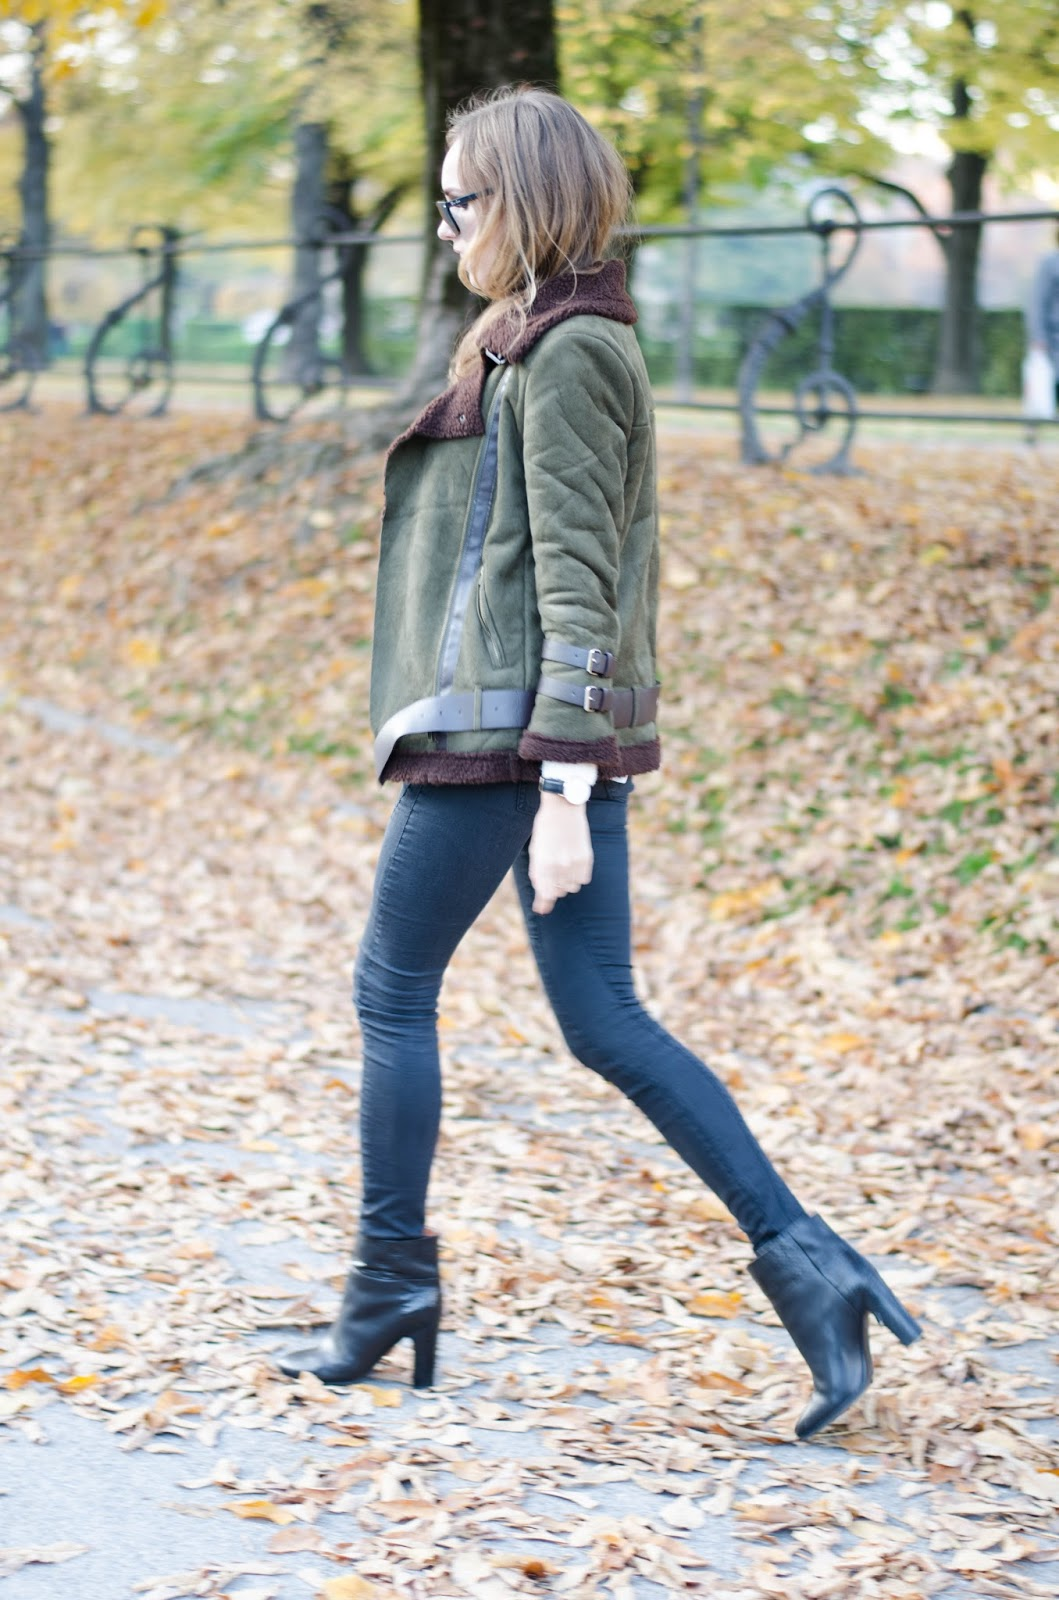 kristjaana mere green brown shearling jacket fall outfit fashion inspiration